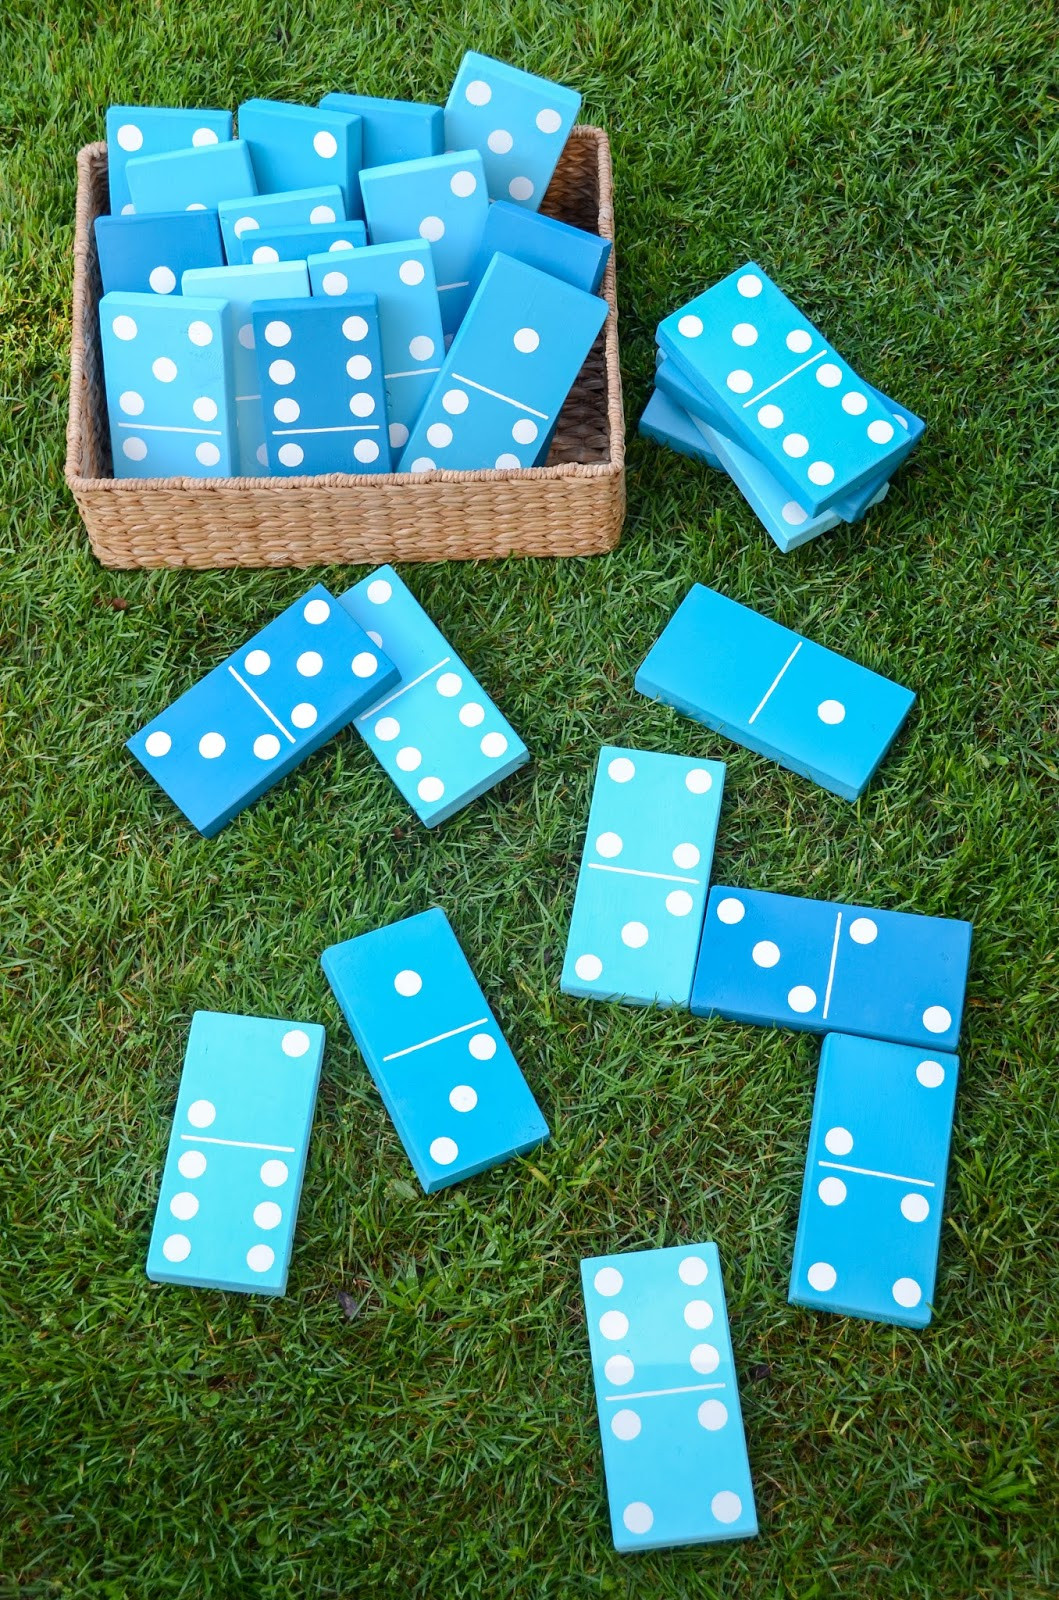 Best ideas about DIY Outdoor Games . Save or Pin 17 DIY Games for Outdoor Family Fun Now.